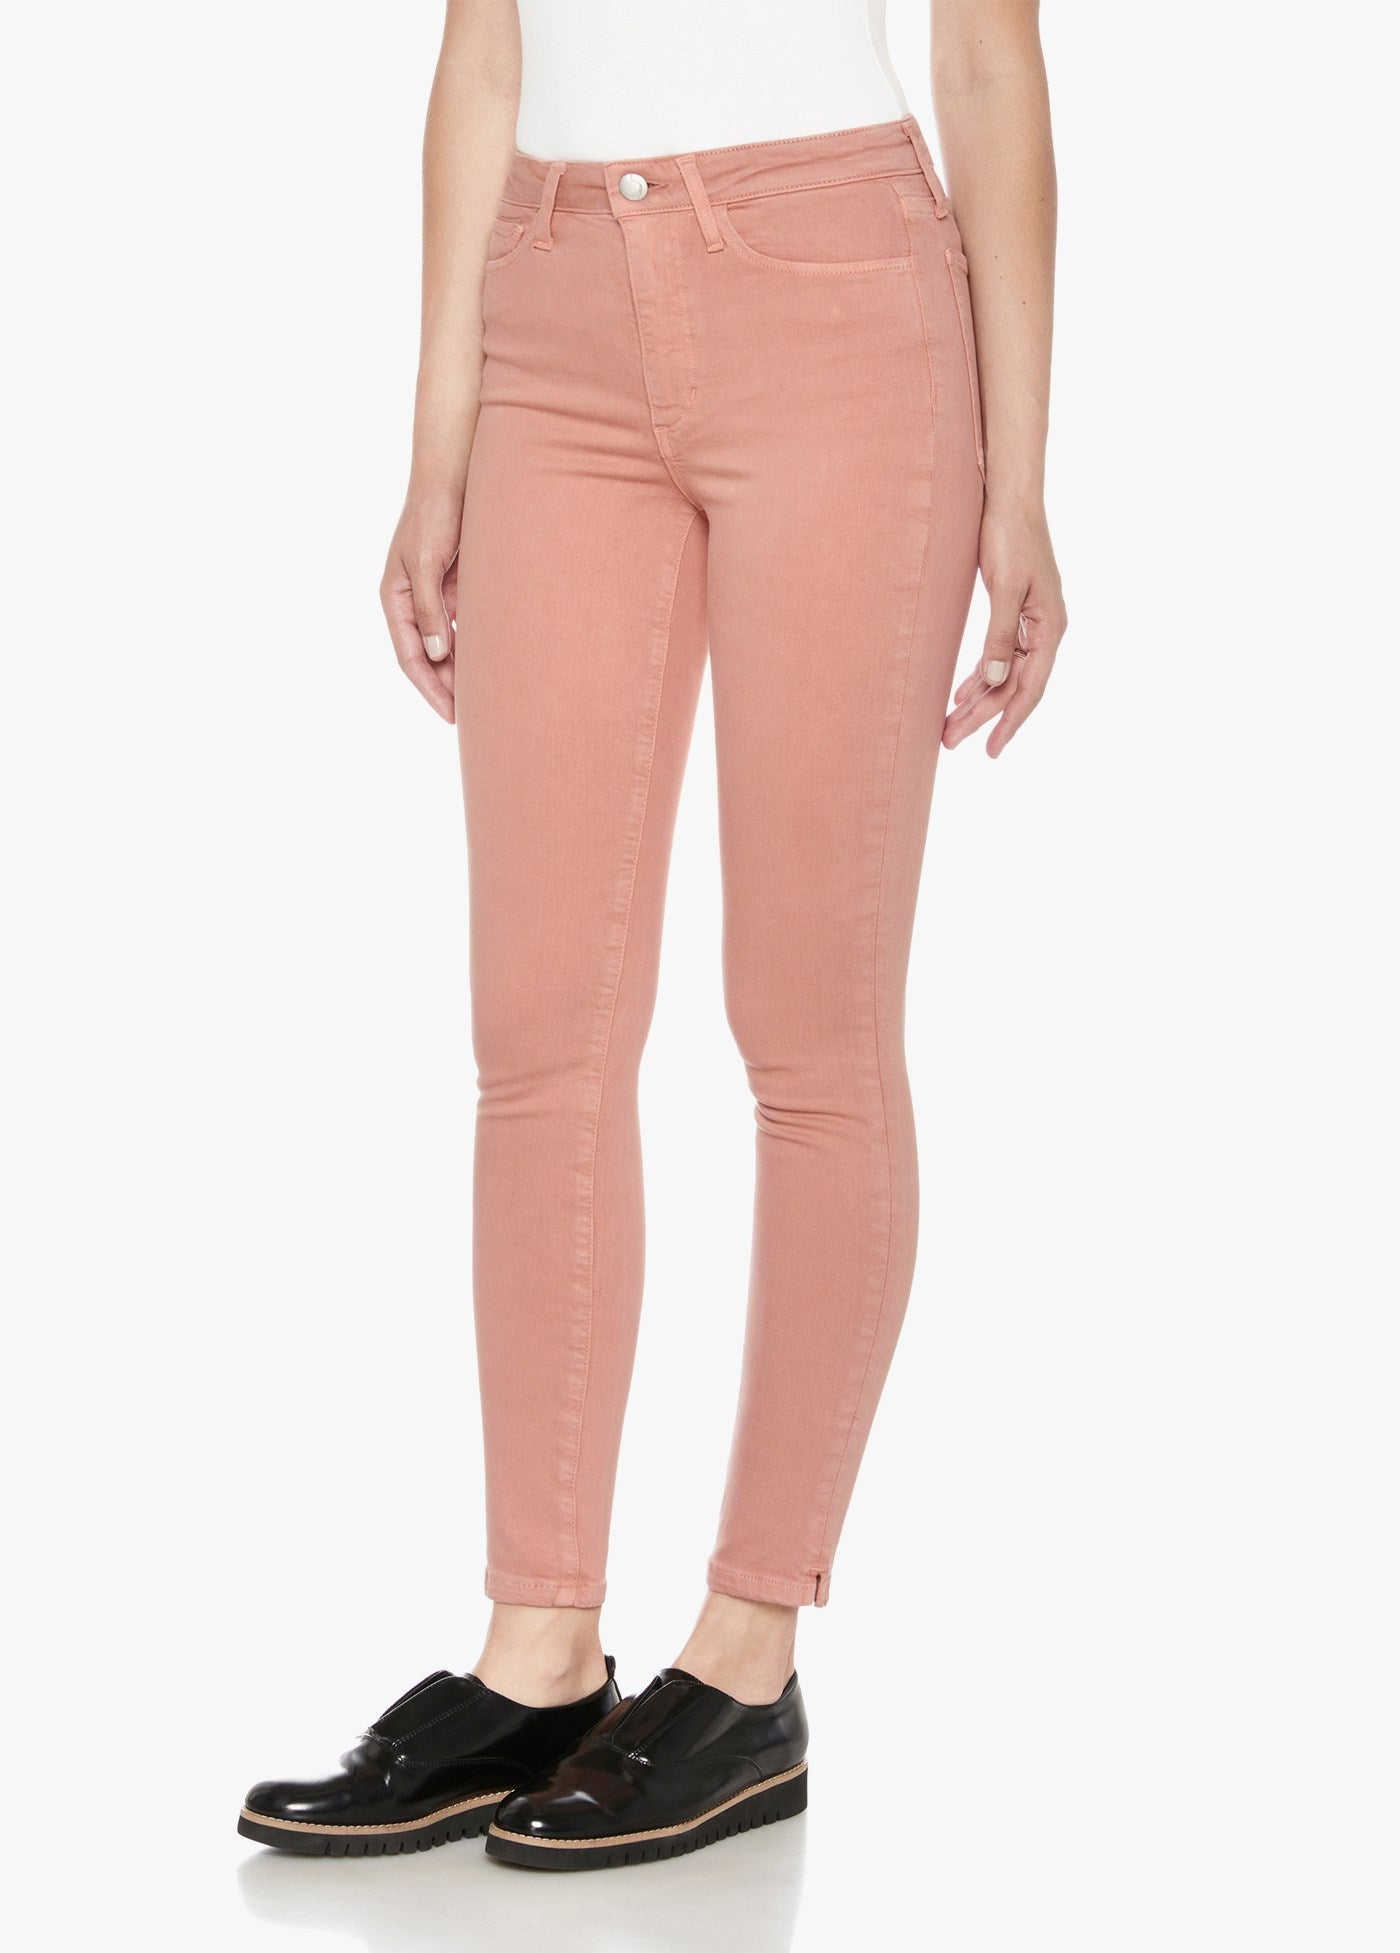 The Charlie High Rise Skinny Ankle - Blush